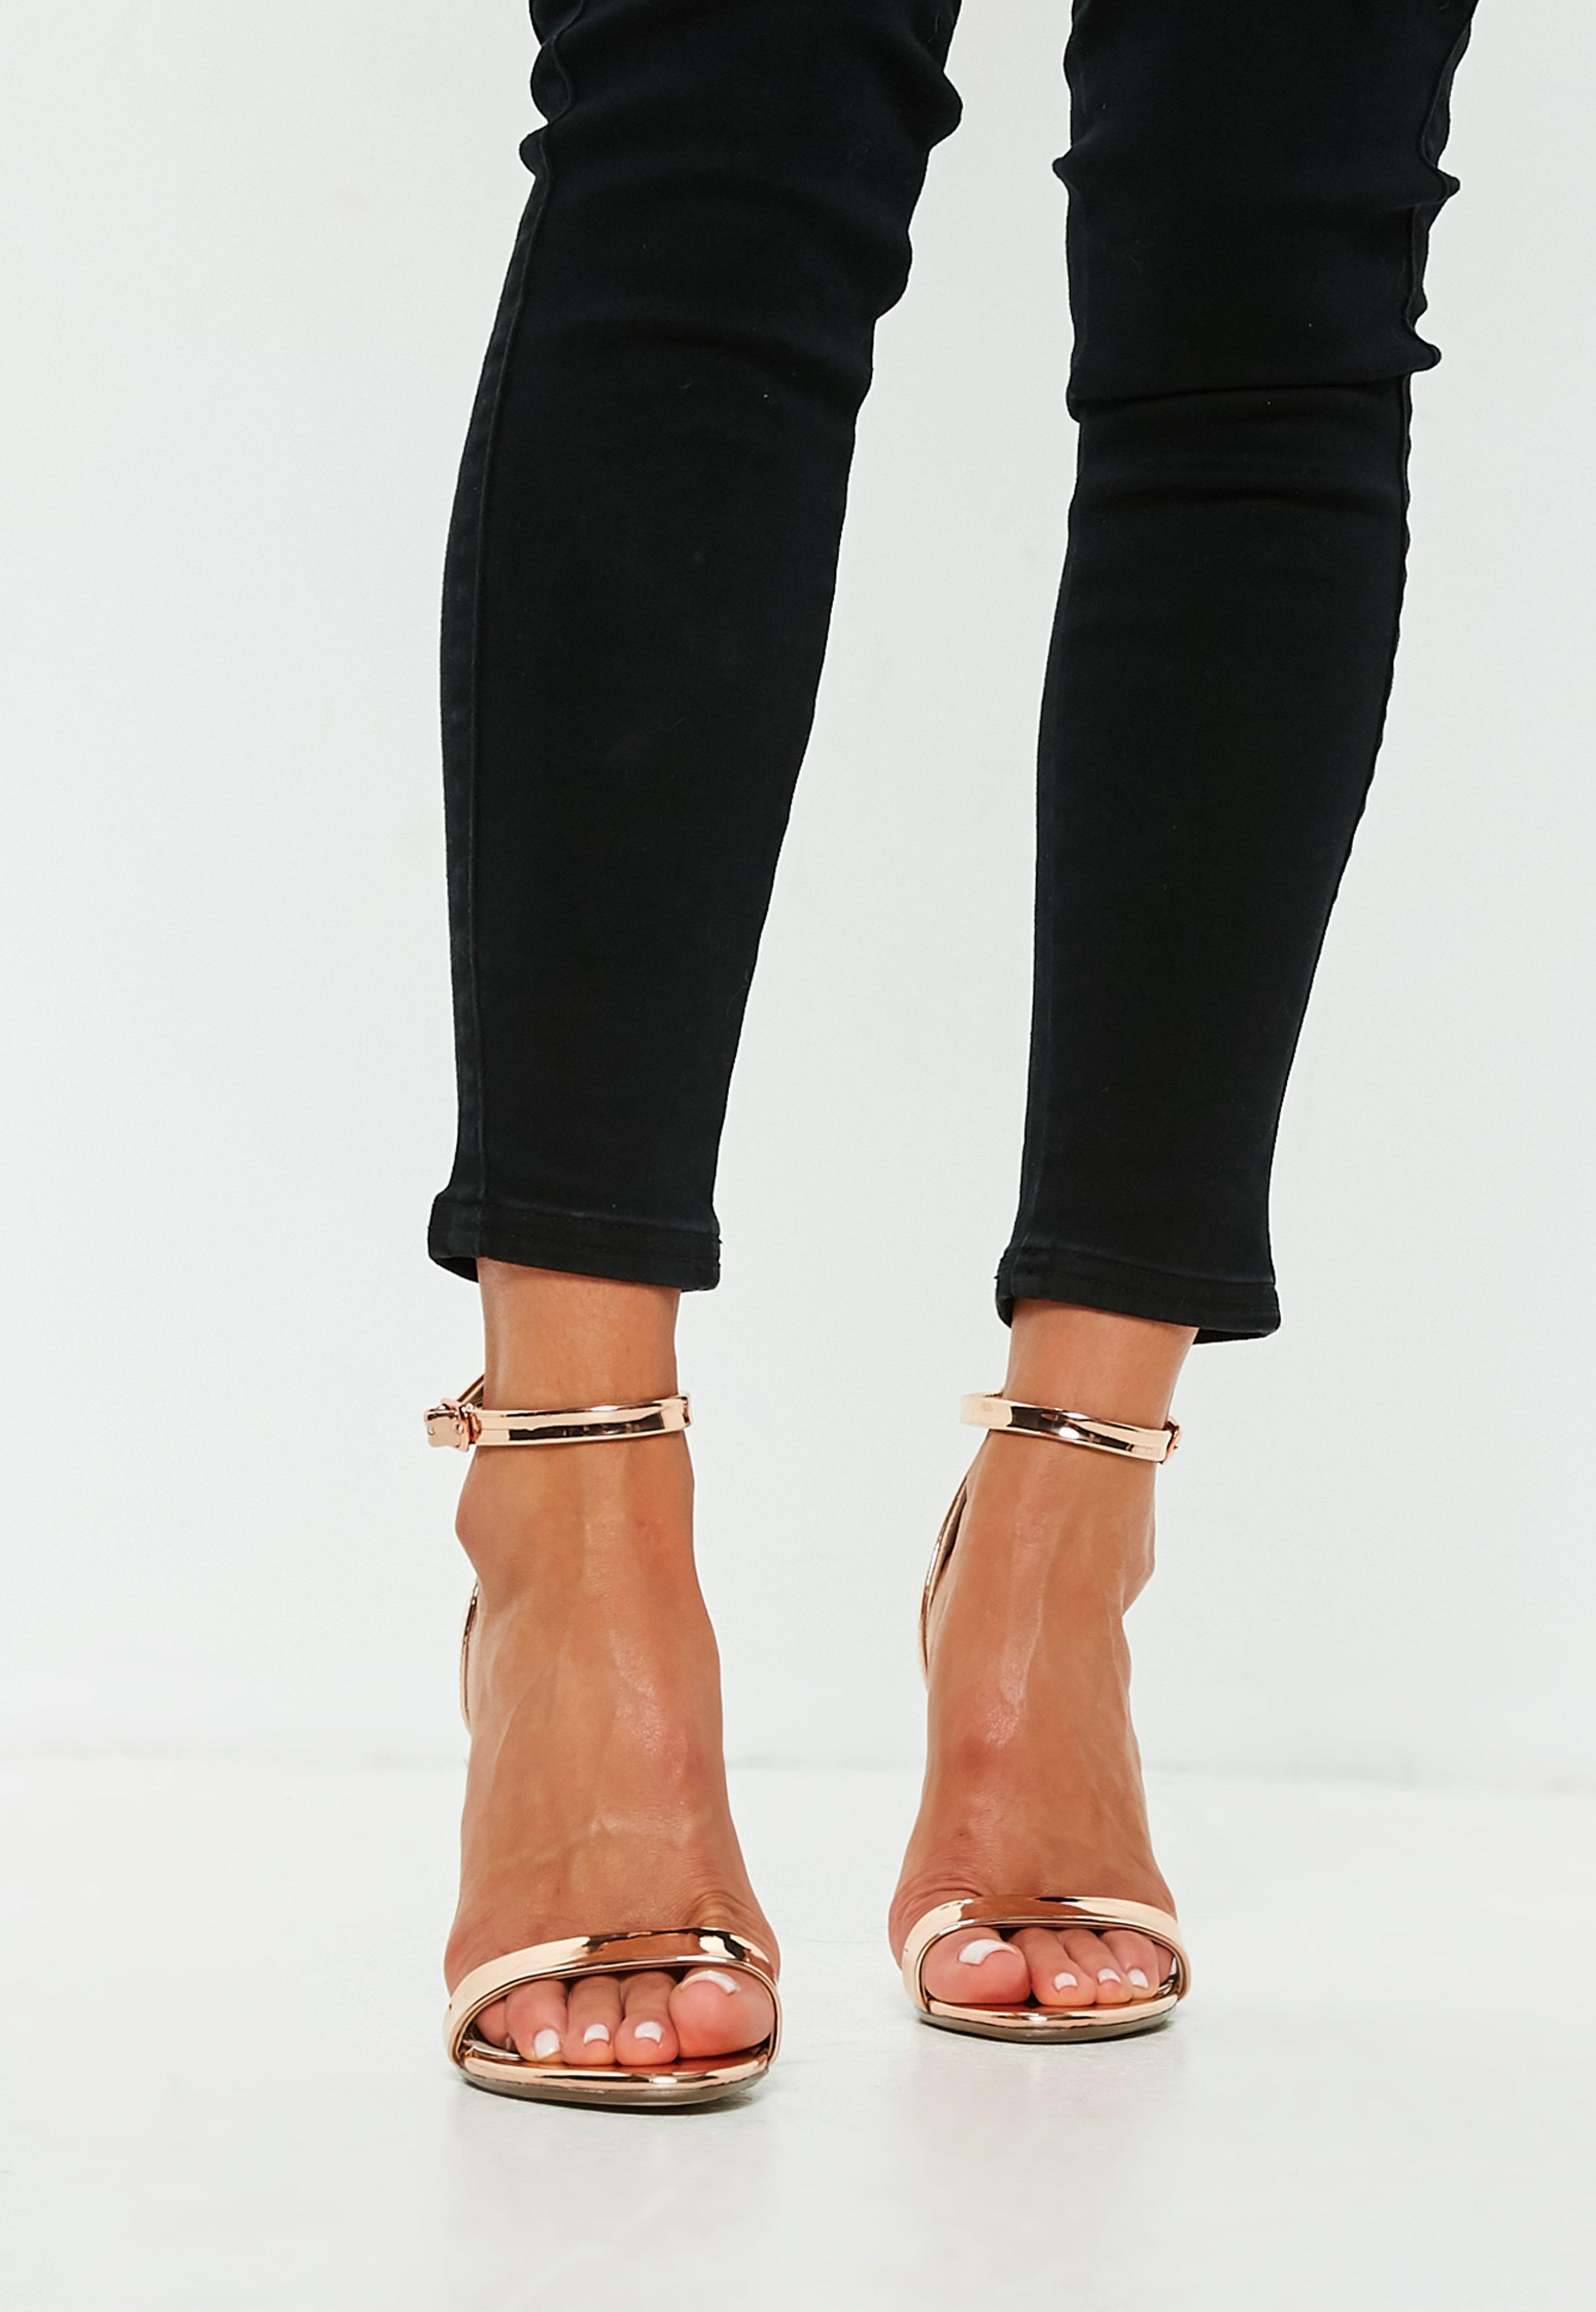 5c1b6581a28 Missguided - Black Rose Gold Flared Block Barely There Heels - Lyst. View  fullscreen